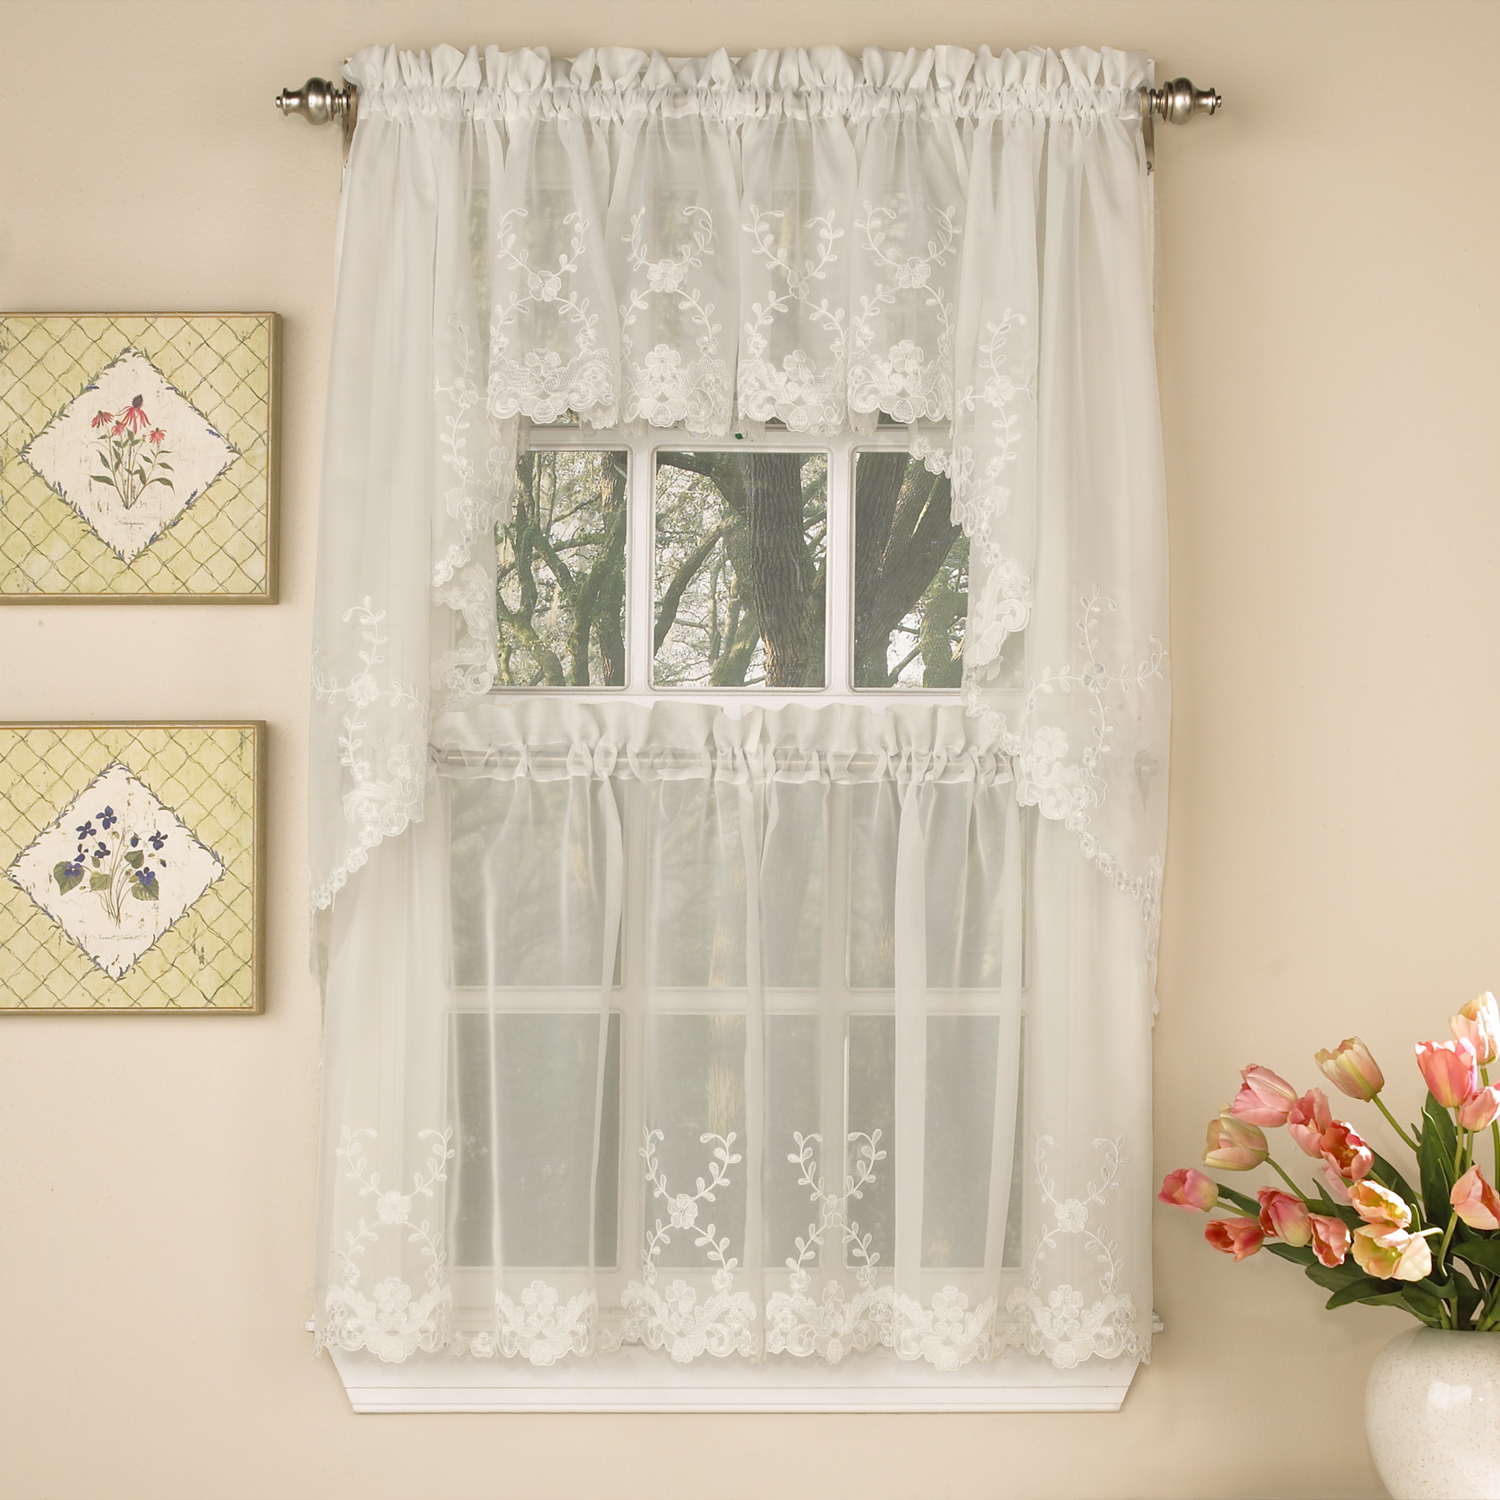 Details about Laurel Leaf Sheer Voile Embroidered Ivory Kitchen Curtains  Tier, Valance or Swag